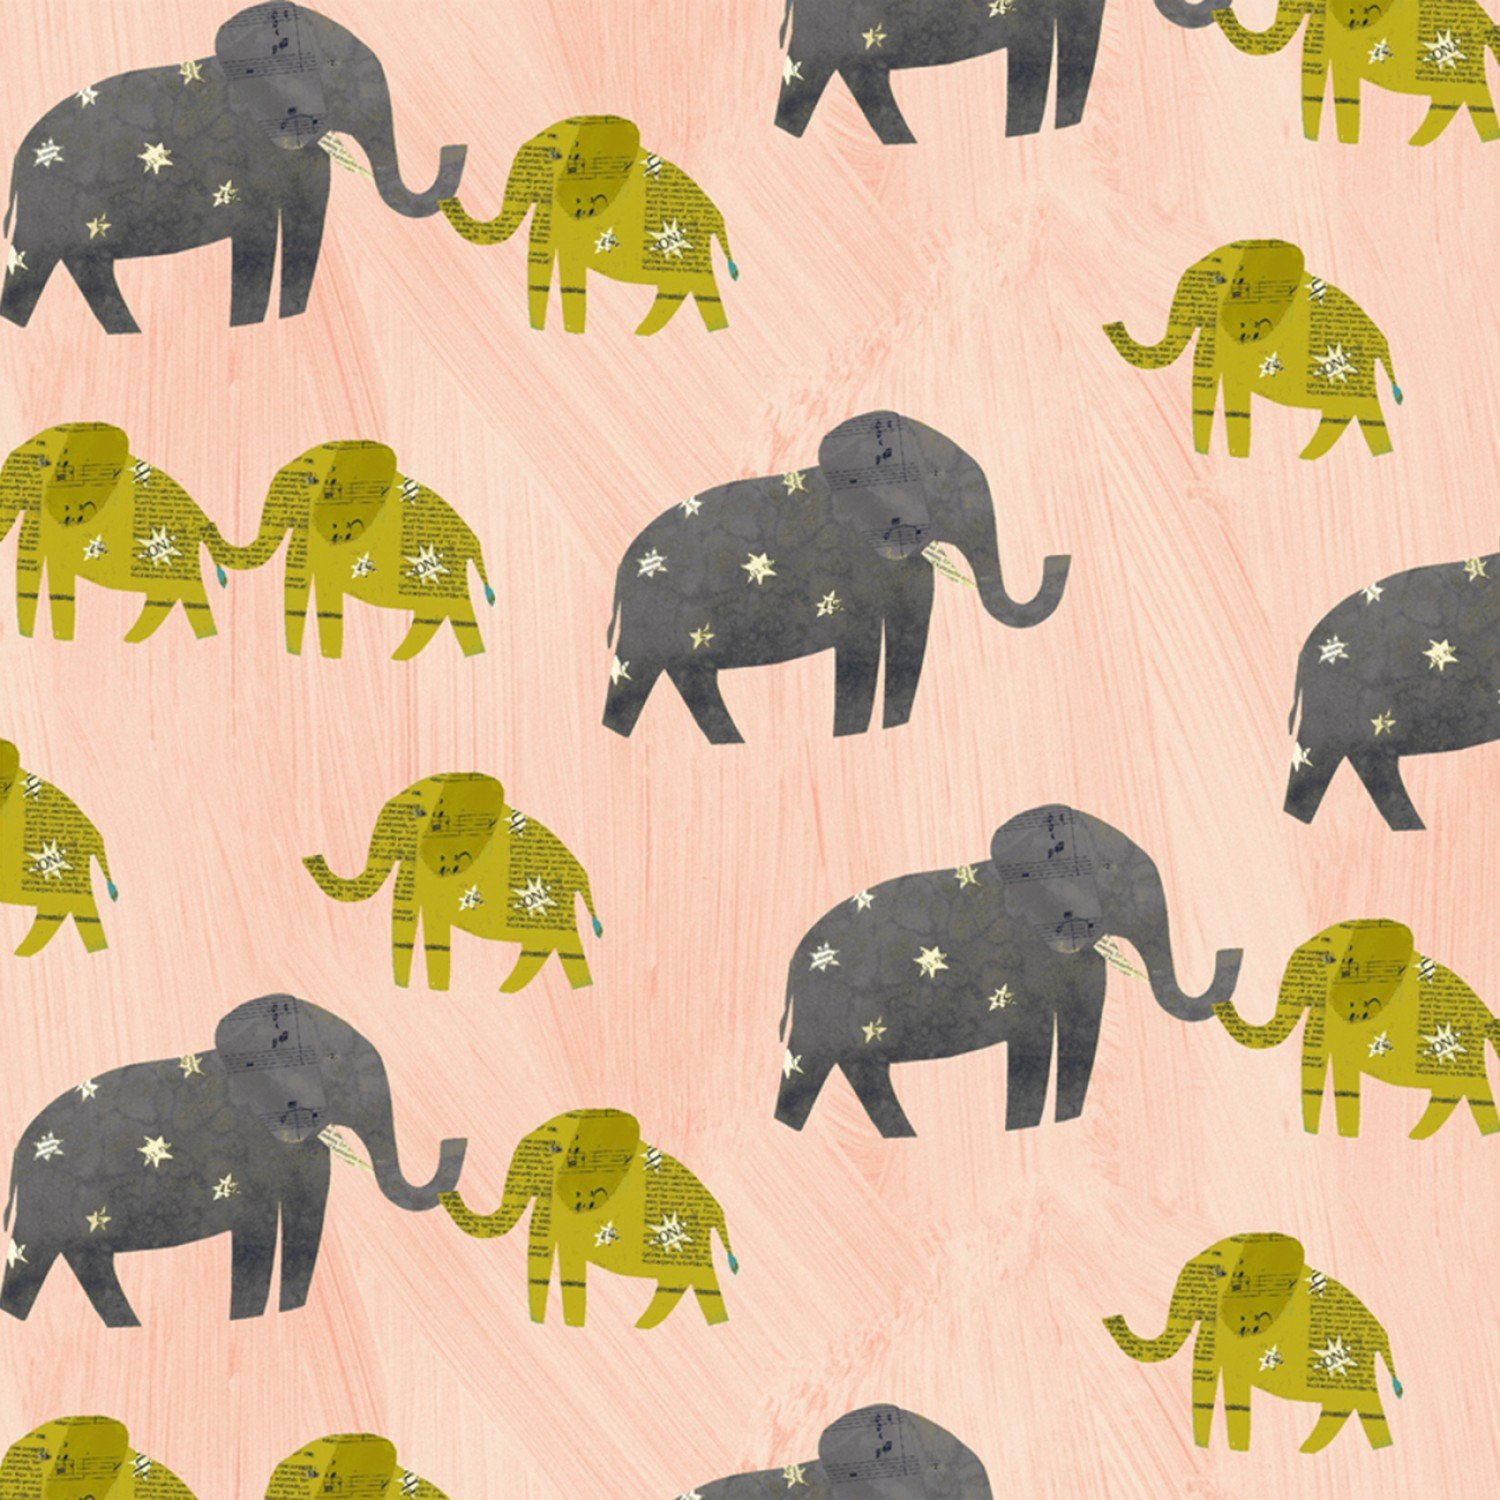 51740 4 Pink Starry Elephants Wish by Carrie Bloomston for Windham Fabrics. 100% cotton 43 wide